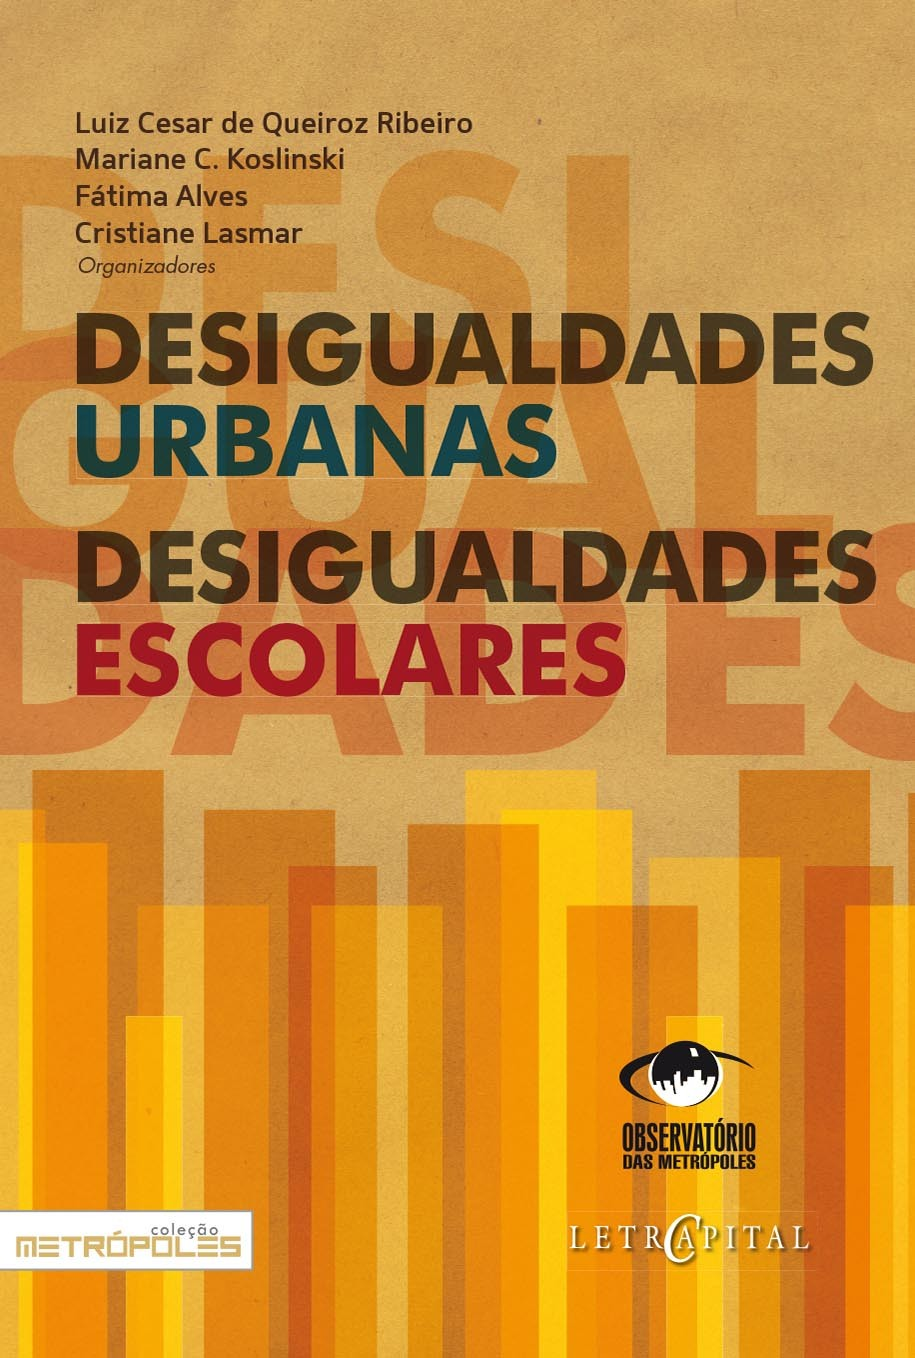 Desigualdades Urbanas, Desigualdades Escolares